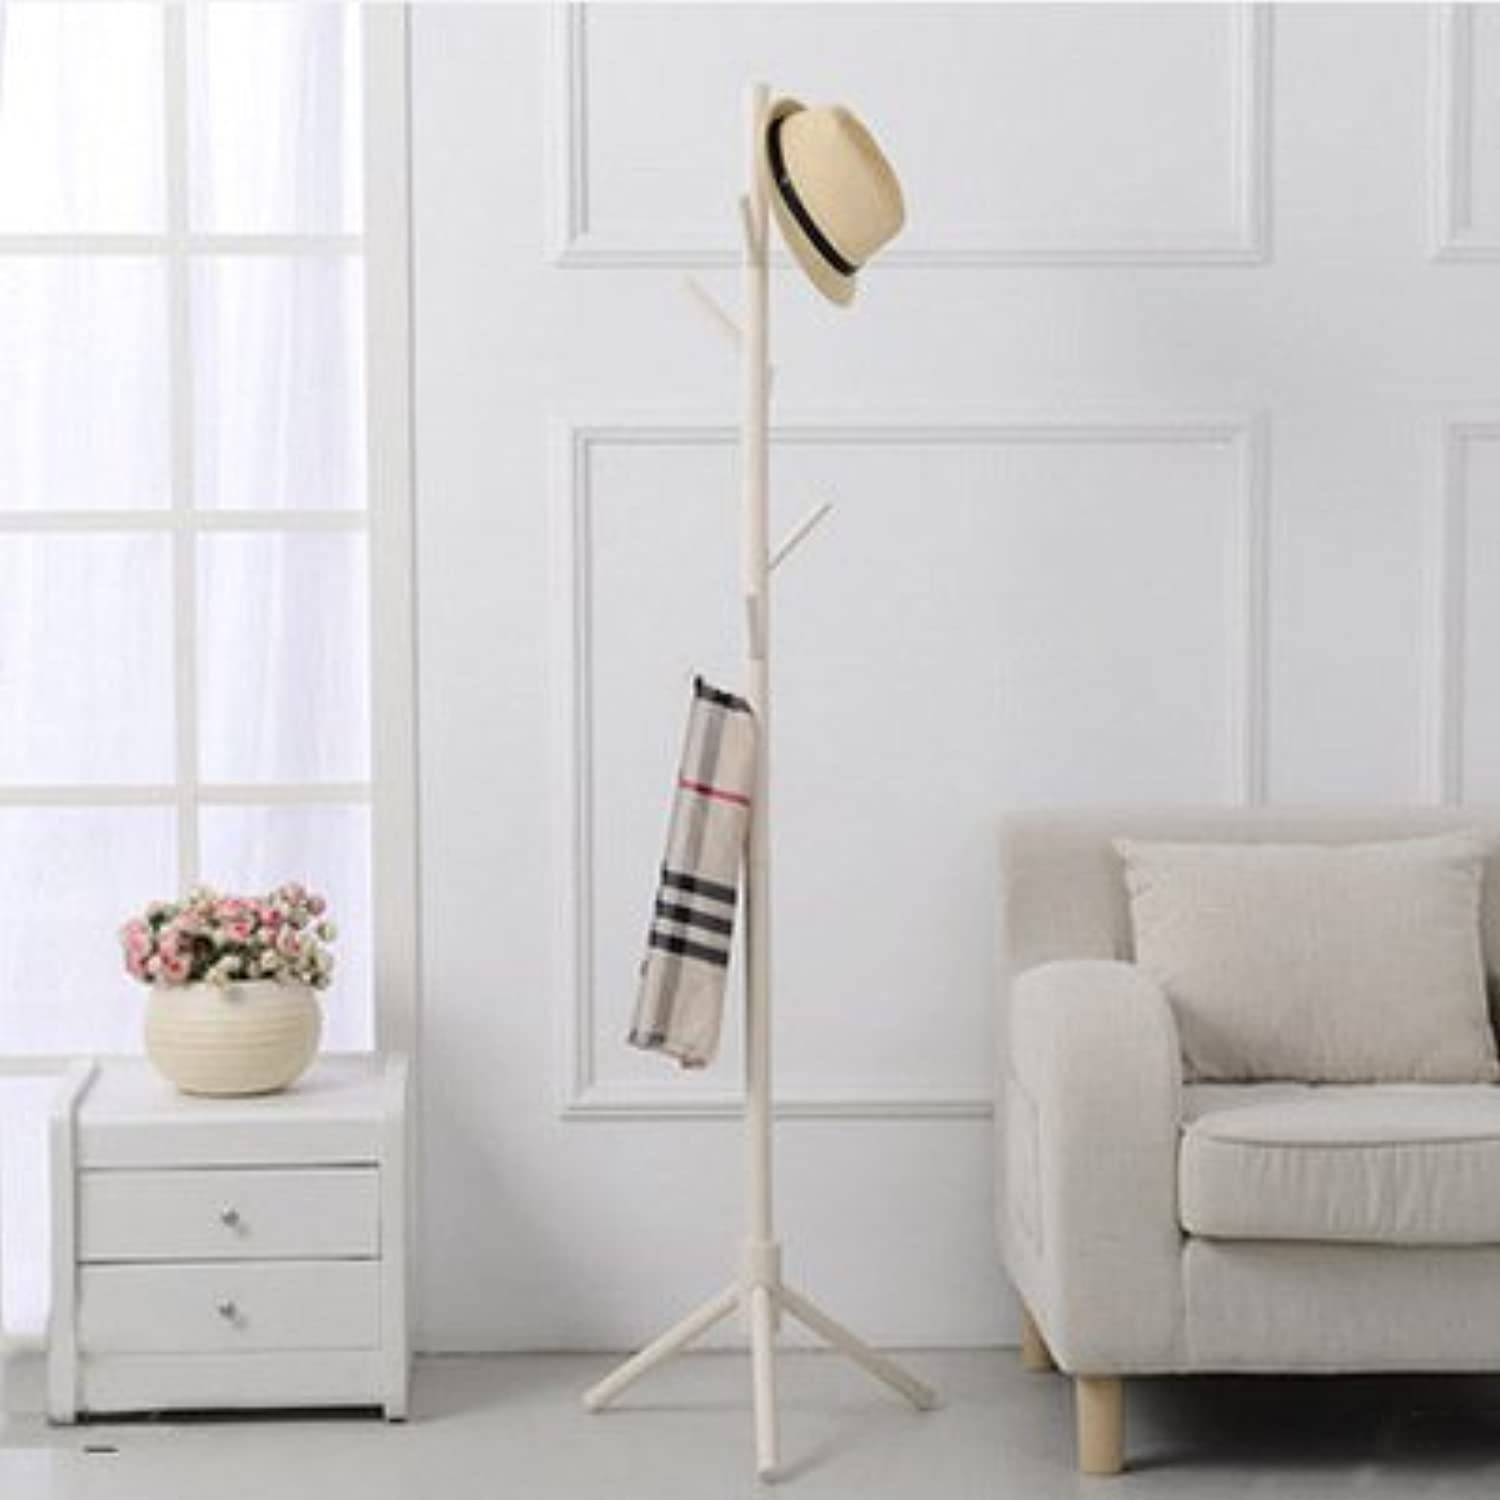 SHLMM Coat Rack Stand, Coat Tree, Hall Tree Free Standing for Clothes, Hat, Bag Or Other Items